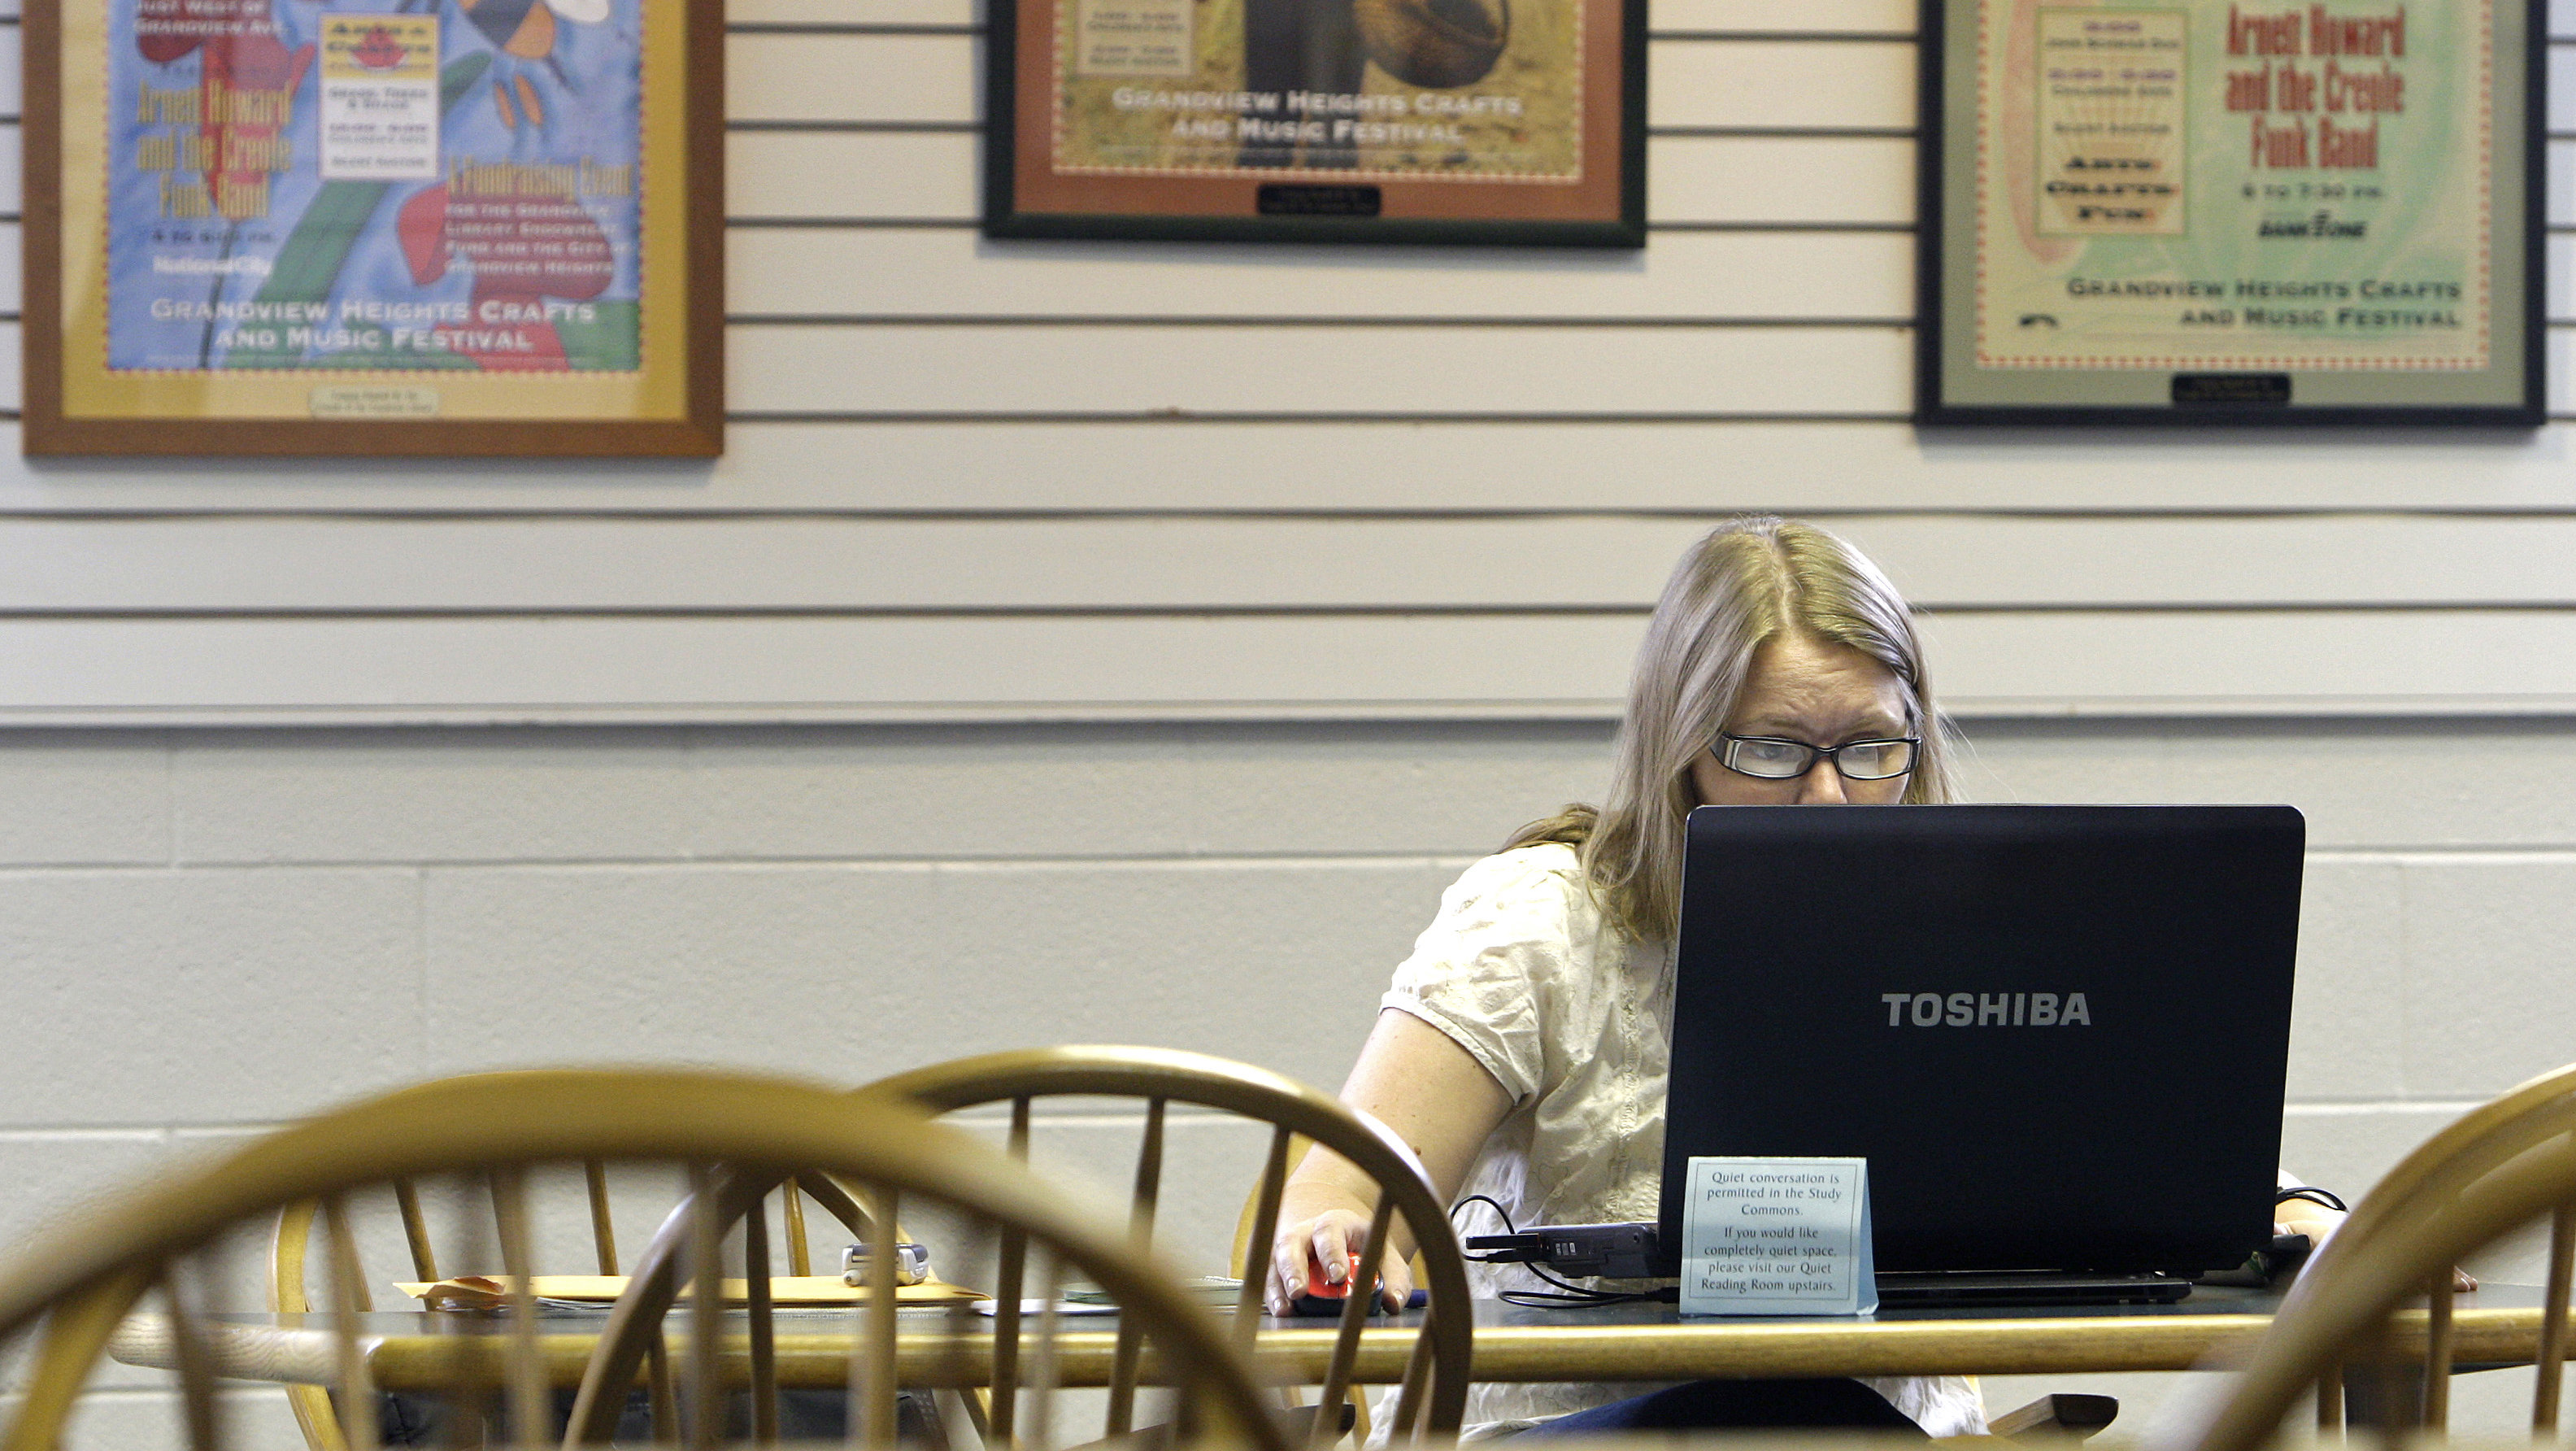 Ohio State student Lindsey Long, of Hilliard, uses the wi-fi connection at Grandview Heights Public Library Wednesday, Sept. 1, 2010, in Grandview Heights, Ohio. Long does research for her thesis at the Grandview Library.